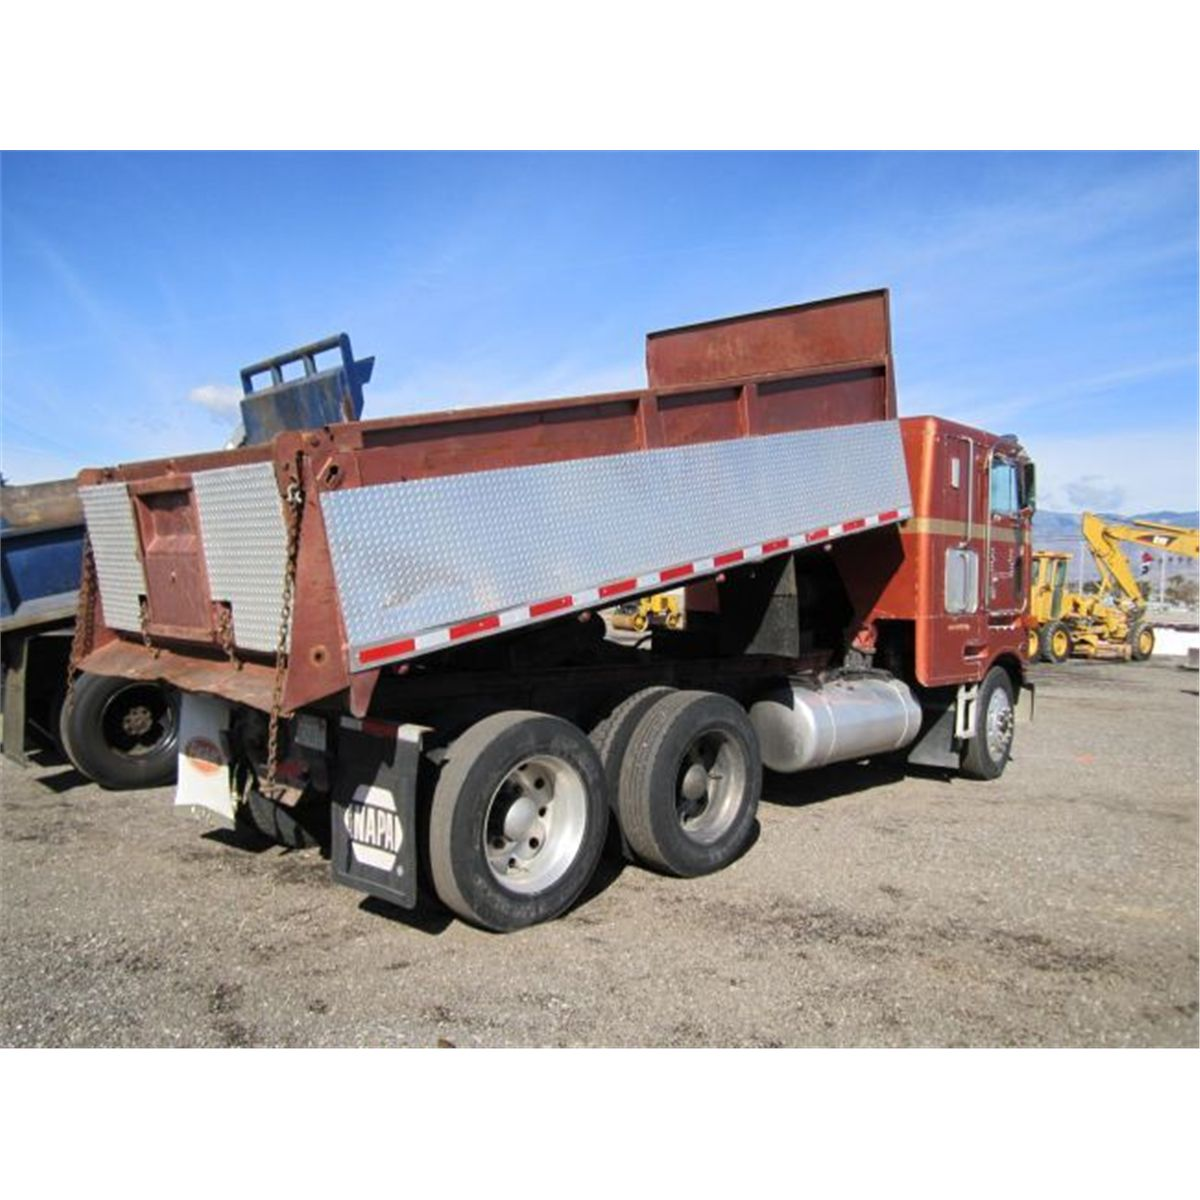 1985 Peterbilt 362 Cab-Over T/A Dump Truck